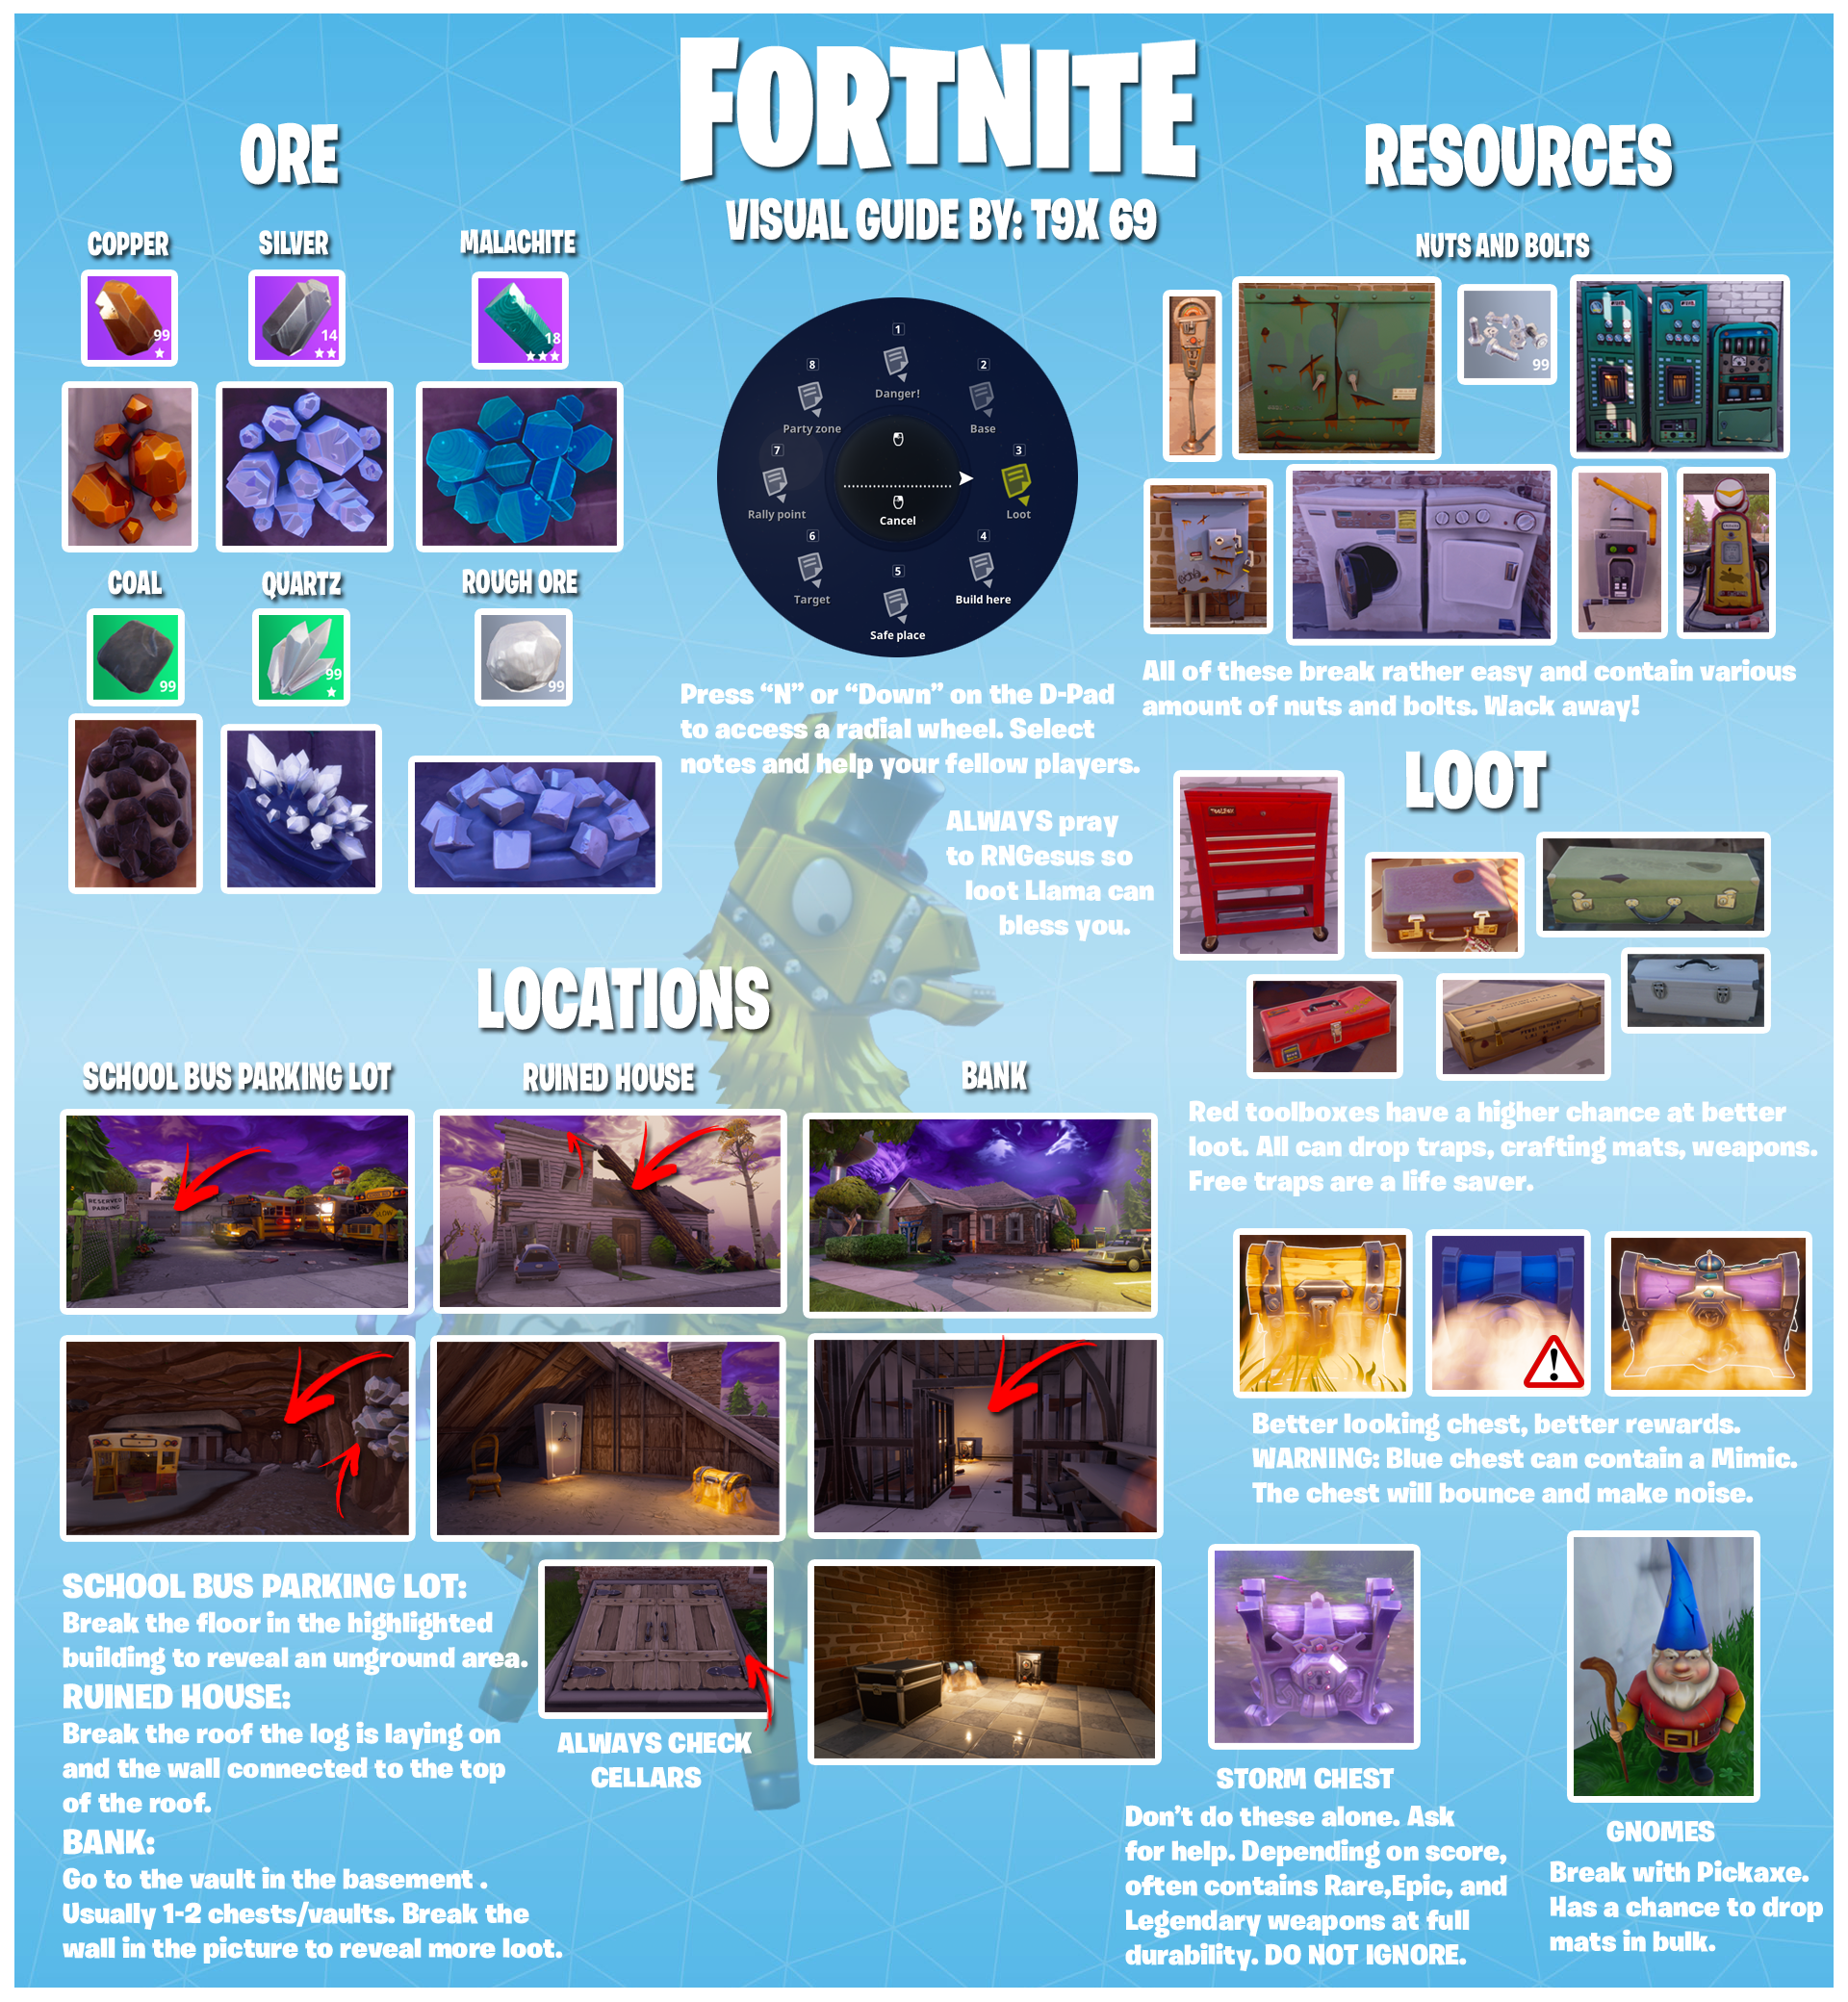 Fortnite at a glance